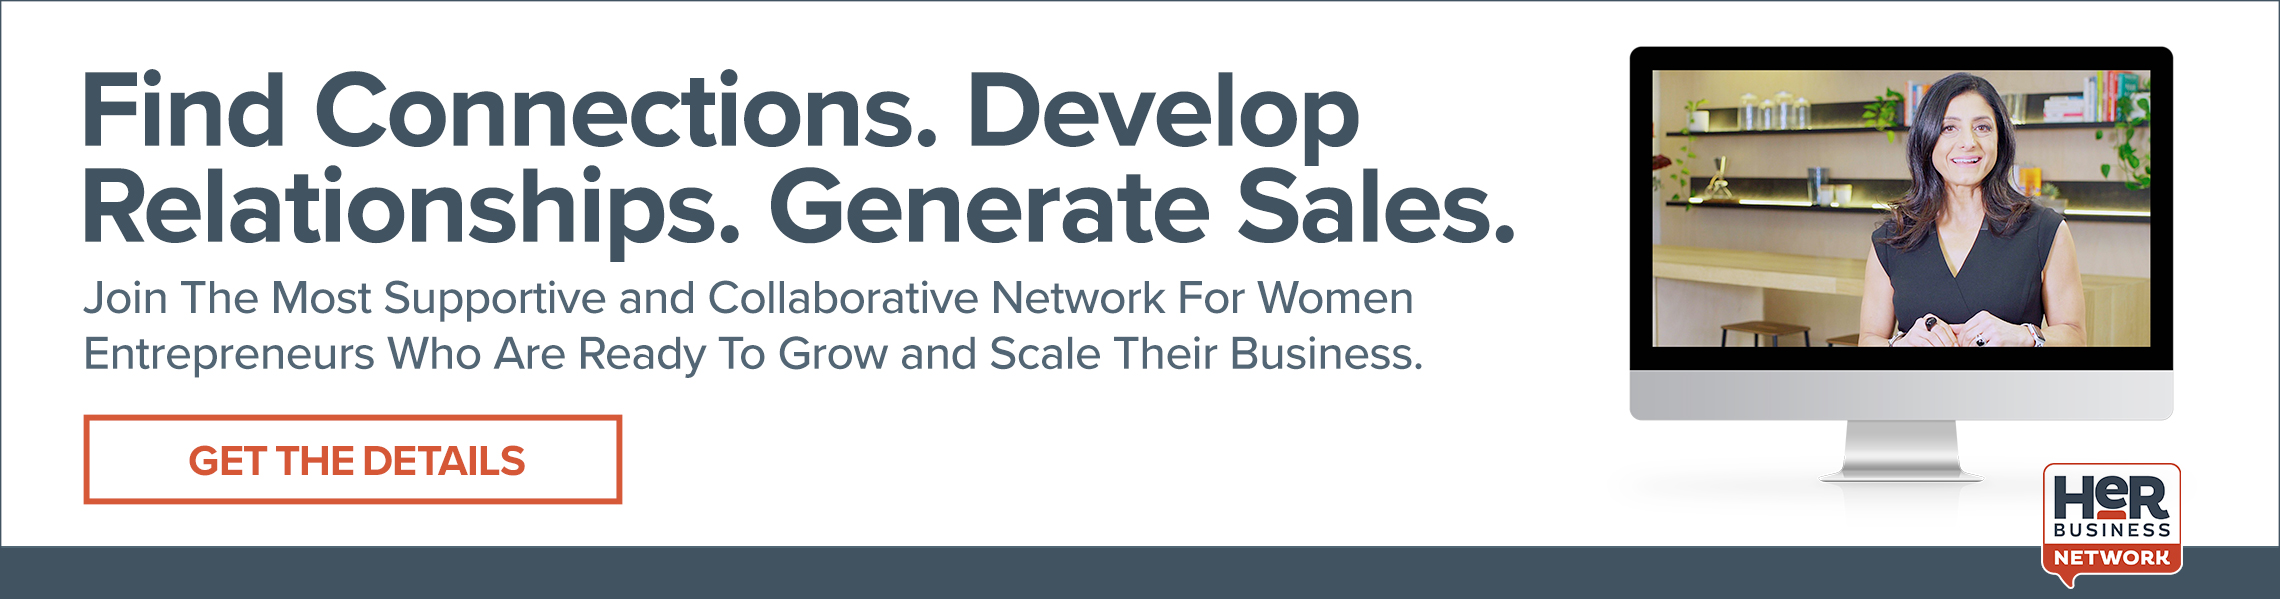 HerBusiness Network - Get the Details